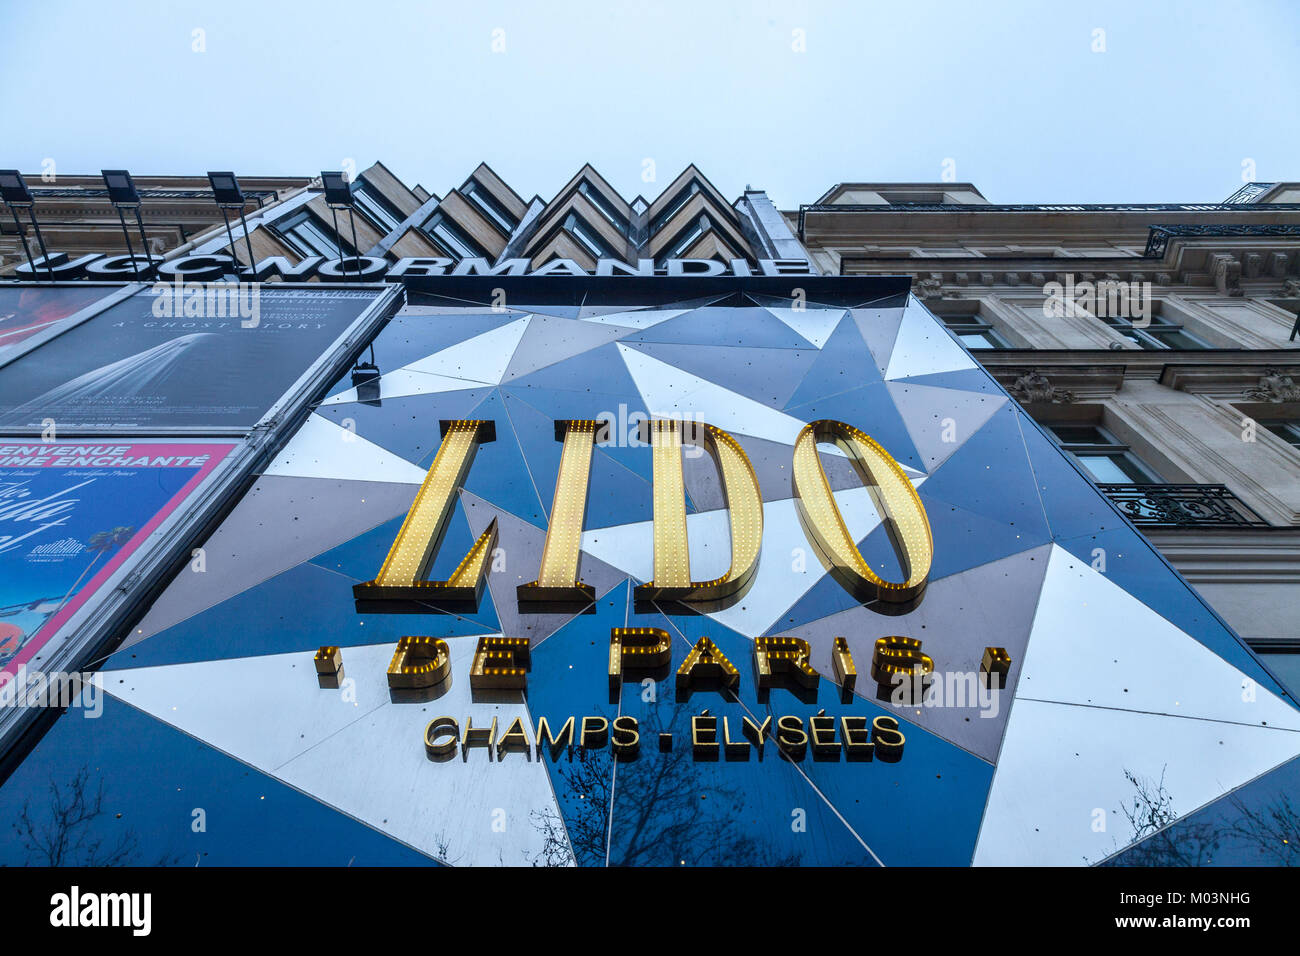 PARIS, FRANCE - DECEMBER 20, 2017: Logo of Lido de Paris club on their main building during the afternoon. Le Lido - Stock Image